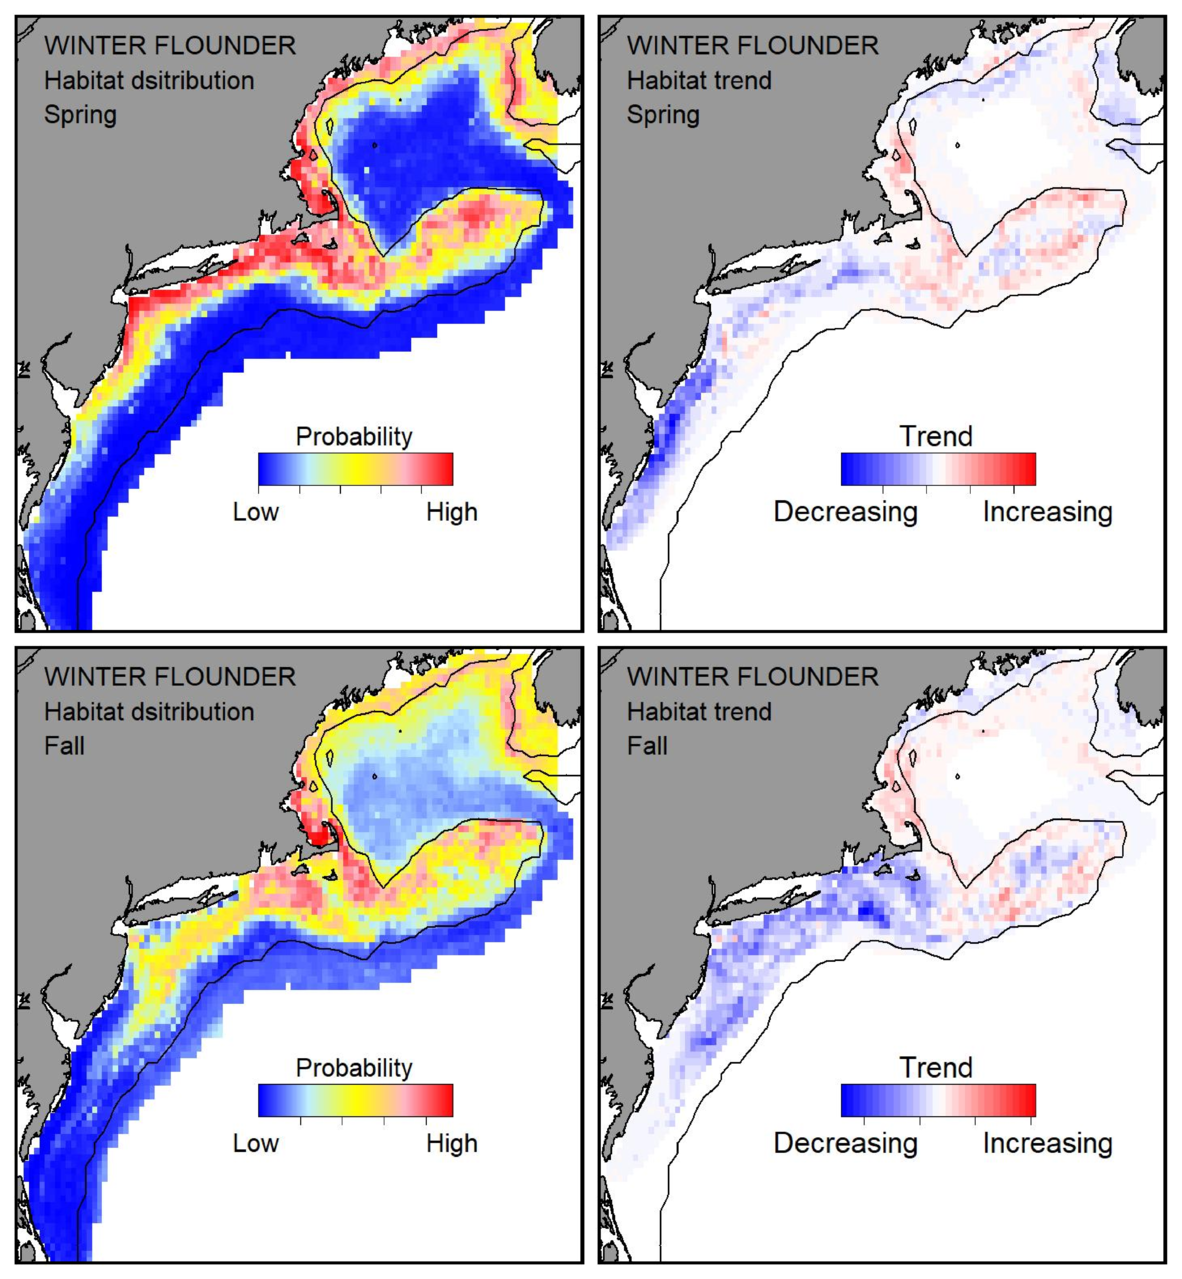 Probable habitat distribution for winter flounder showing the highest concentration and increasing trend in the Gulf of Maine during the spring. Bottom row: Probable habitat distribution for winter flounder showing the highest concentration and increasing trend in the Gulf of Maine during the fall.